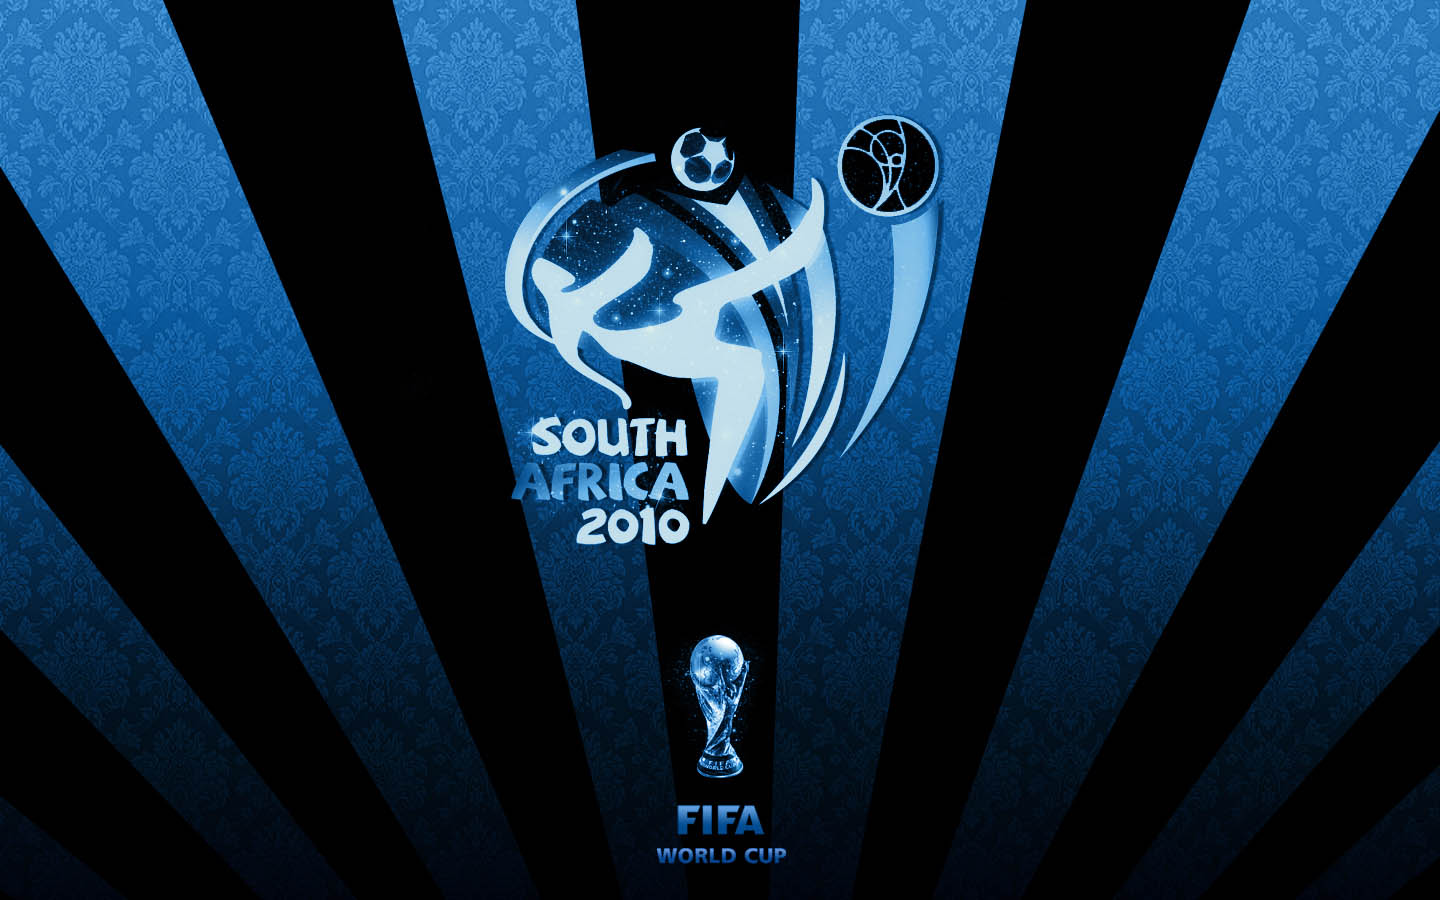 Wallpapers World Cup South Africa 2010 Intangibles